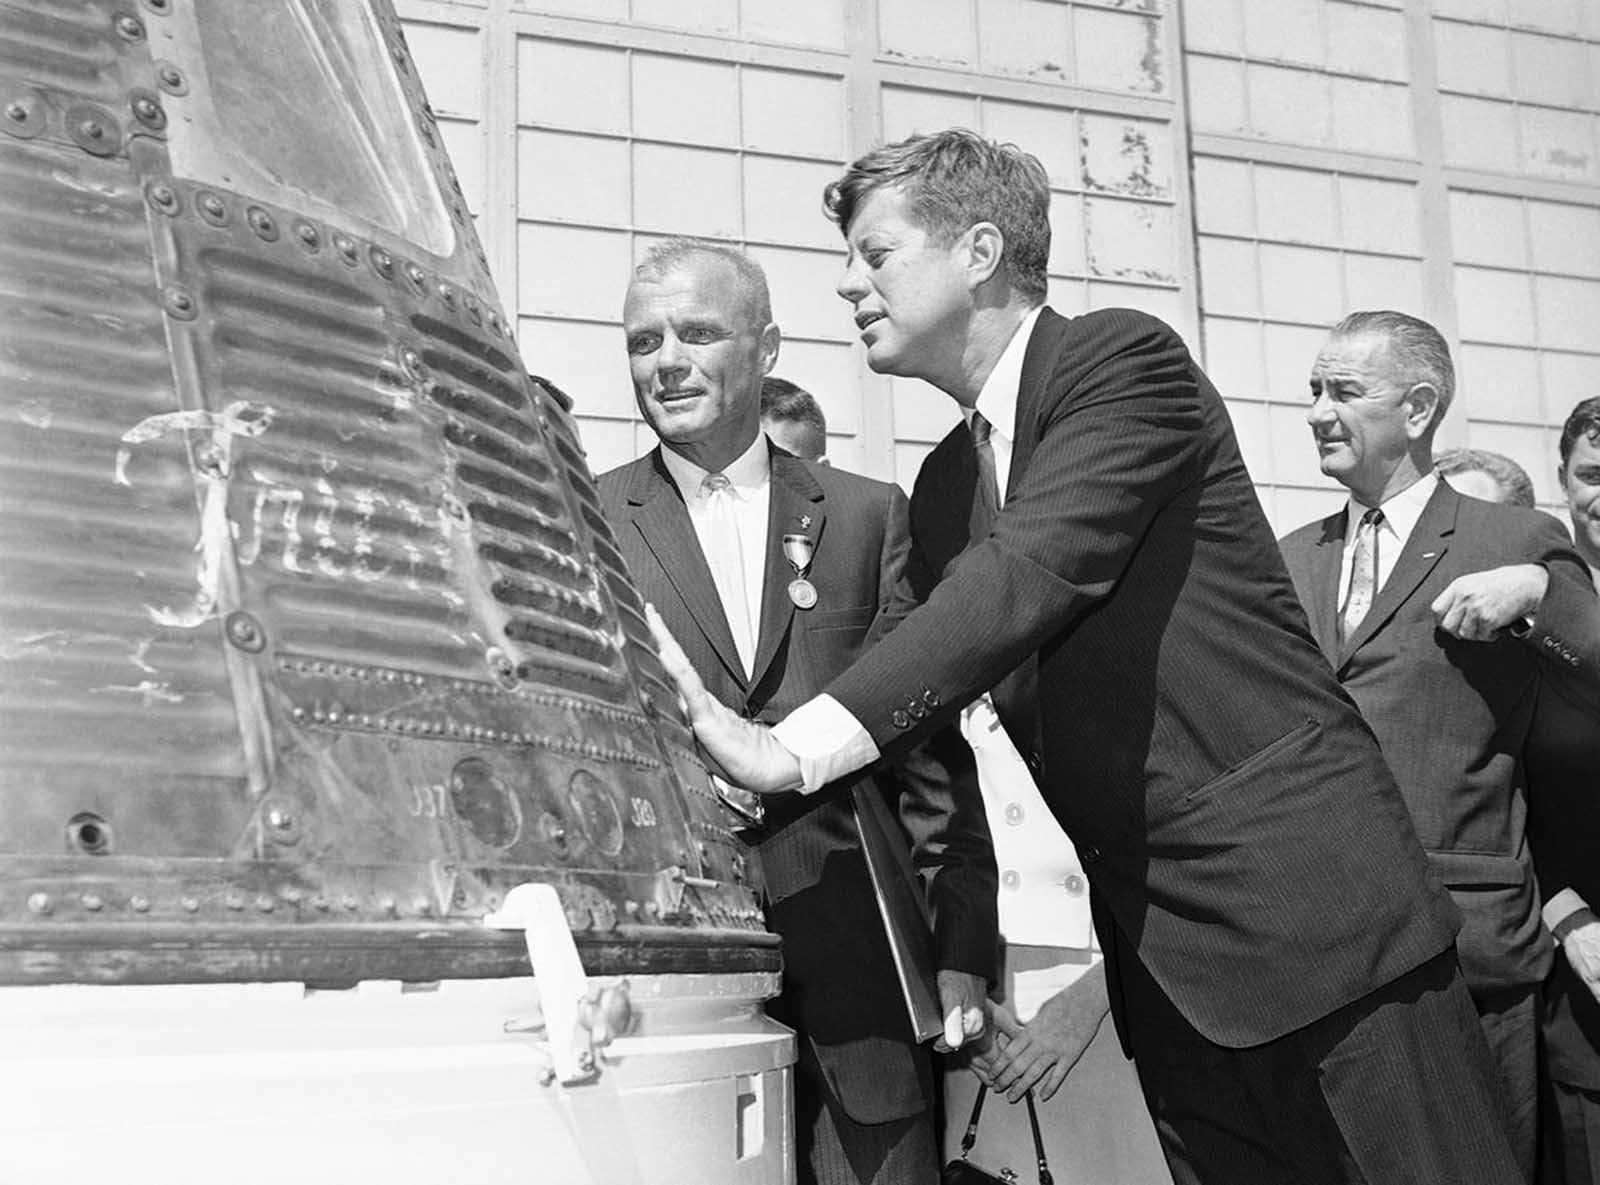 Astronaut John Glenn and President John Kennedy inspect the Friendship 7, the Mercury capsule which Glenn rode in orbit. Kennedy presented the Distinguished Service Medal to Glenn on February 23, 1962 at Cape Canaveral, Florida.